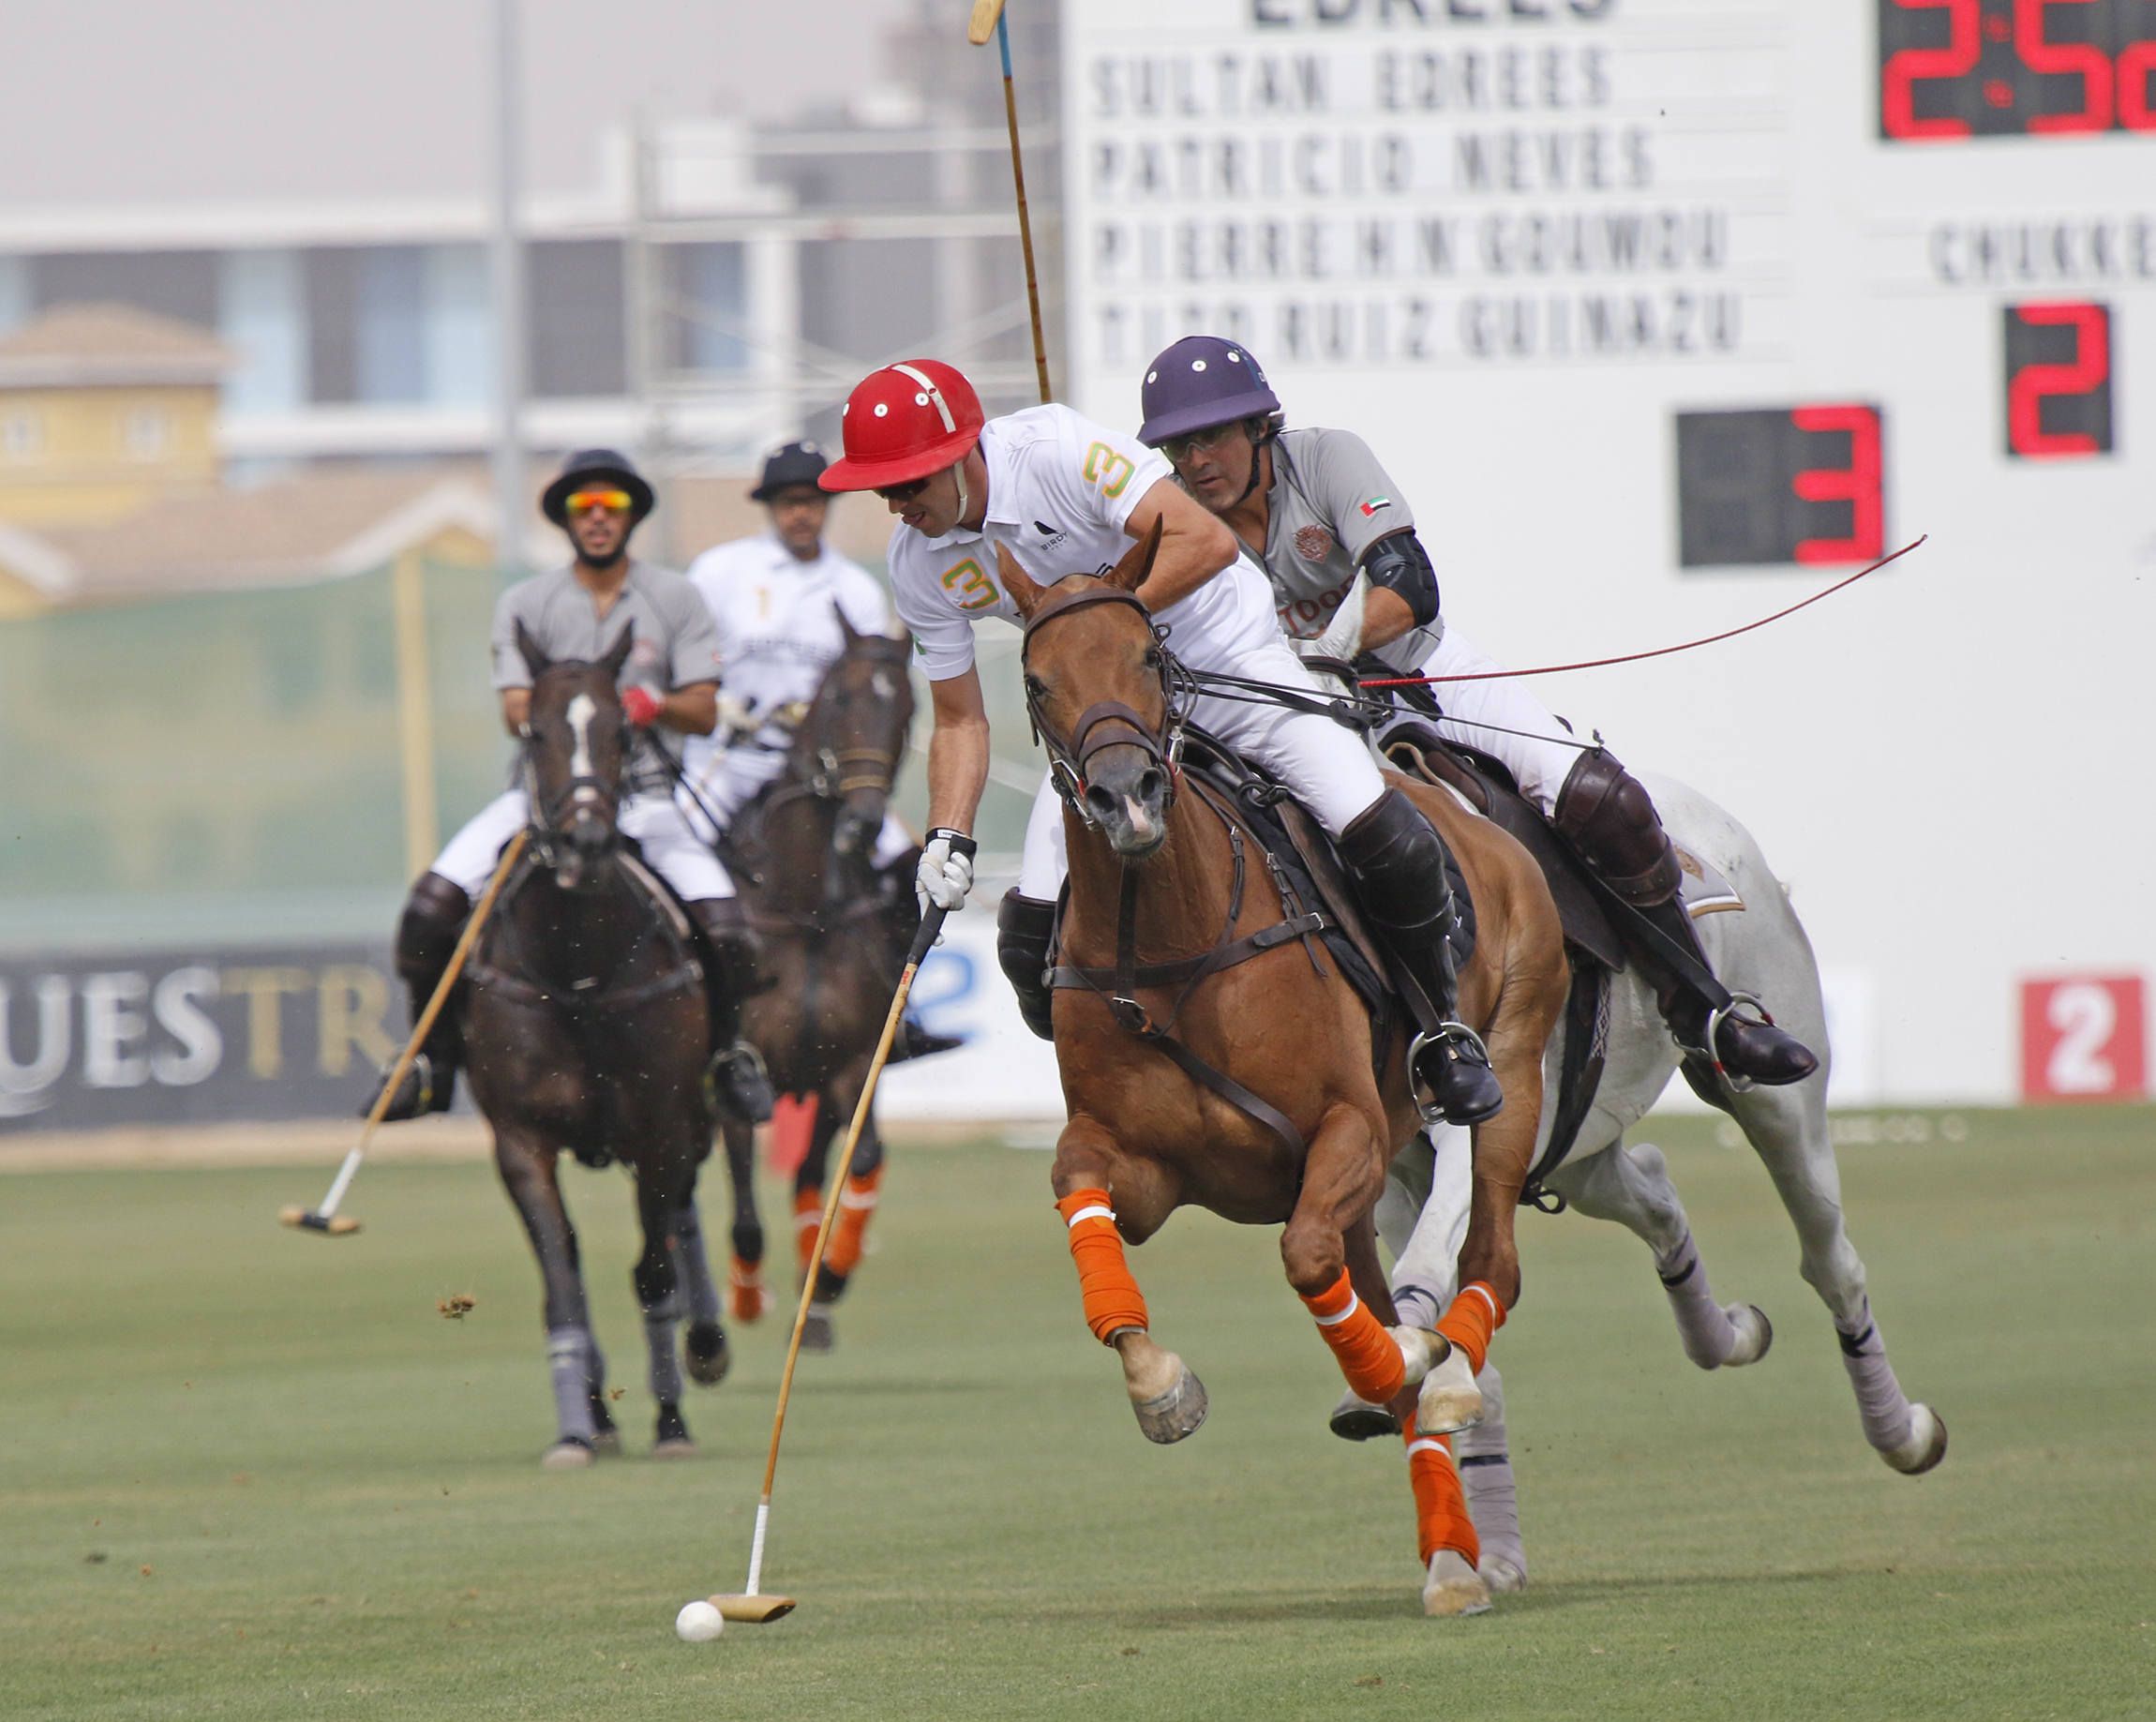 Horse Times Egypt: Equestrian Magazine :News :HABTOOR POLO WINS AND COMPLETES THE SEMIFINALS  OF THE DUBAI CHALLENGE CUP 2016